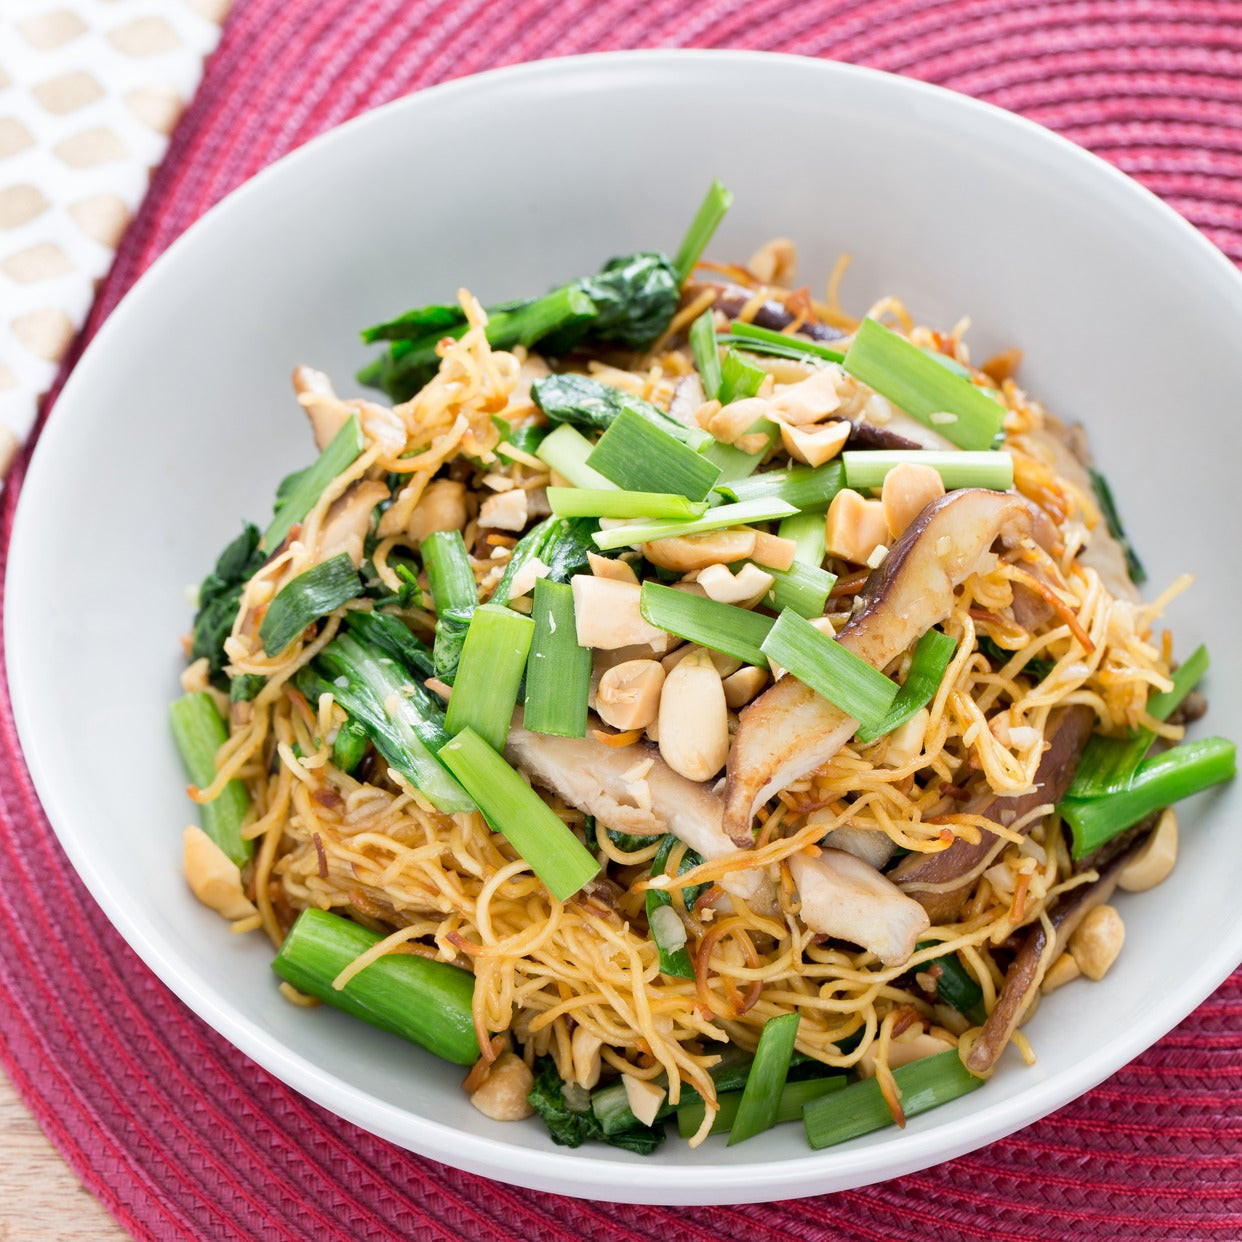 Chow Mein Stir Fry Noodles  Recipe Stir Fried Chow Mein Noodles with Chinese Broccoli